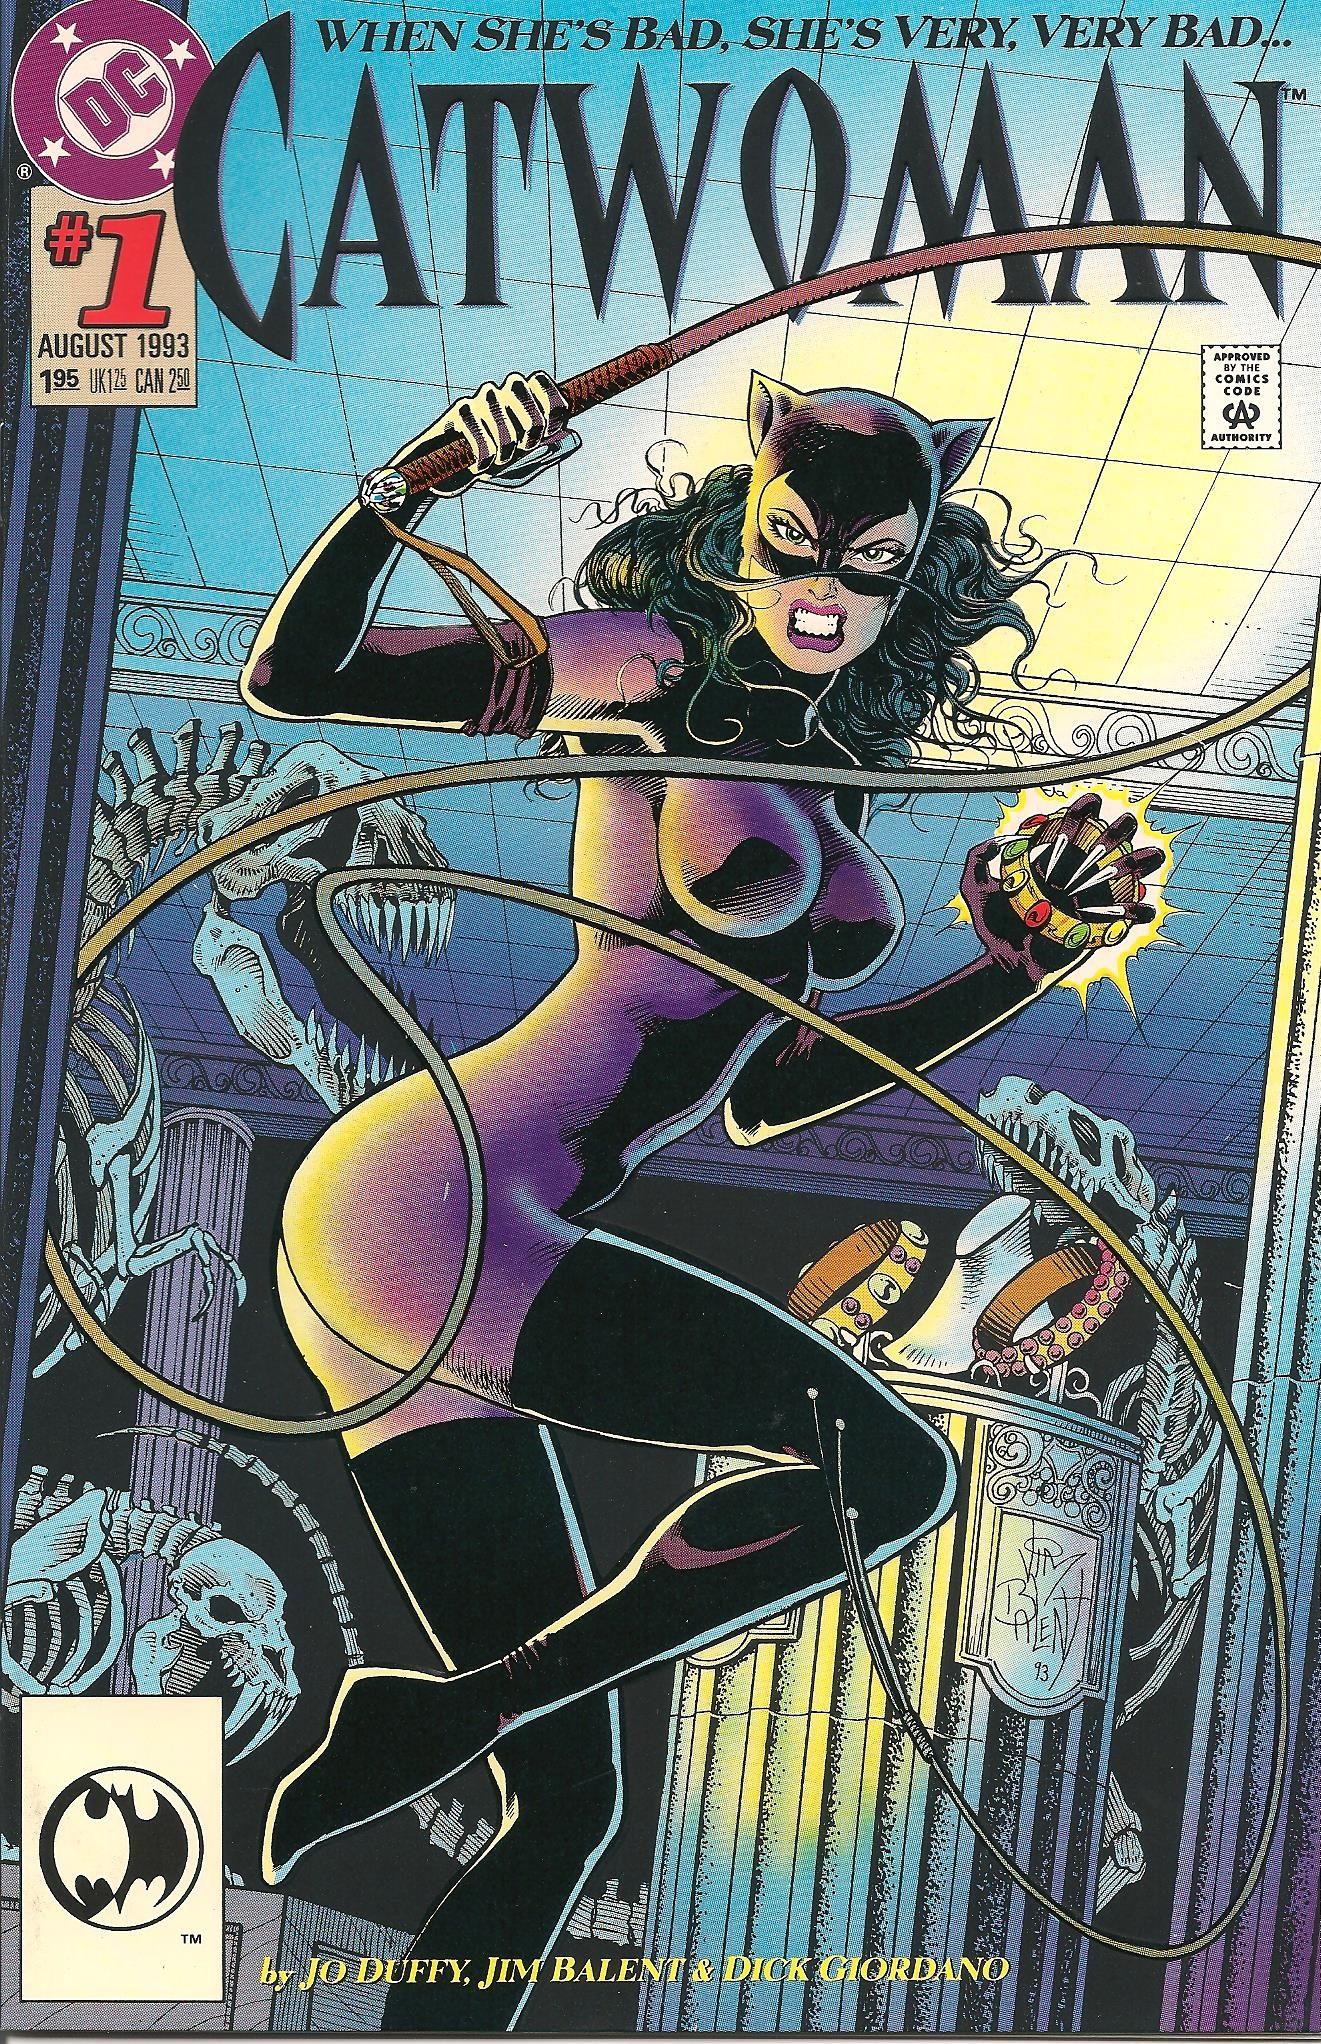 Image result for Cat Woman comic